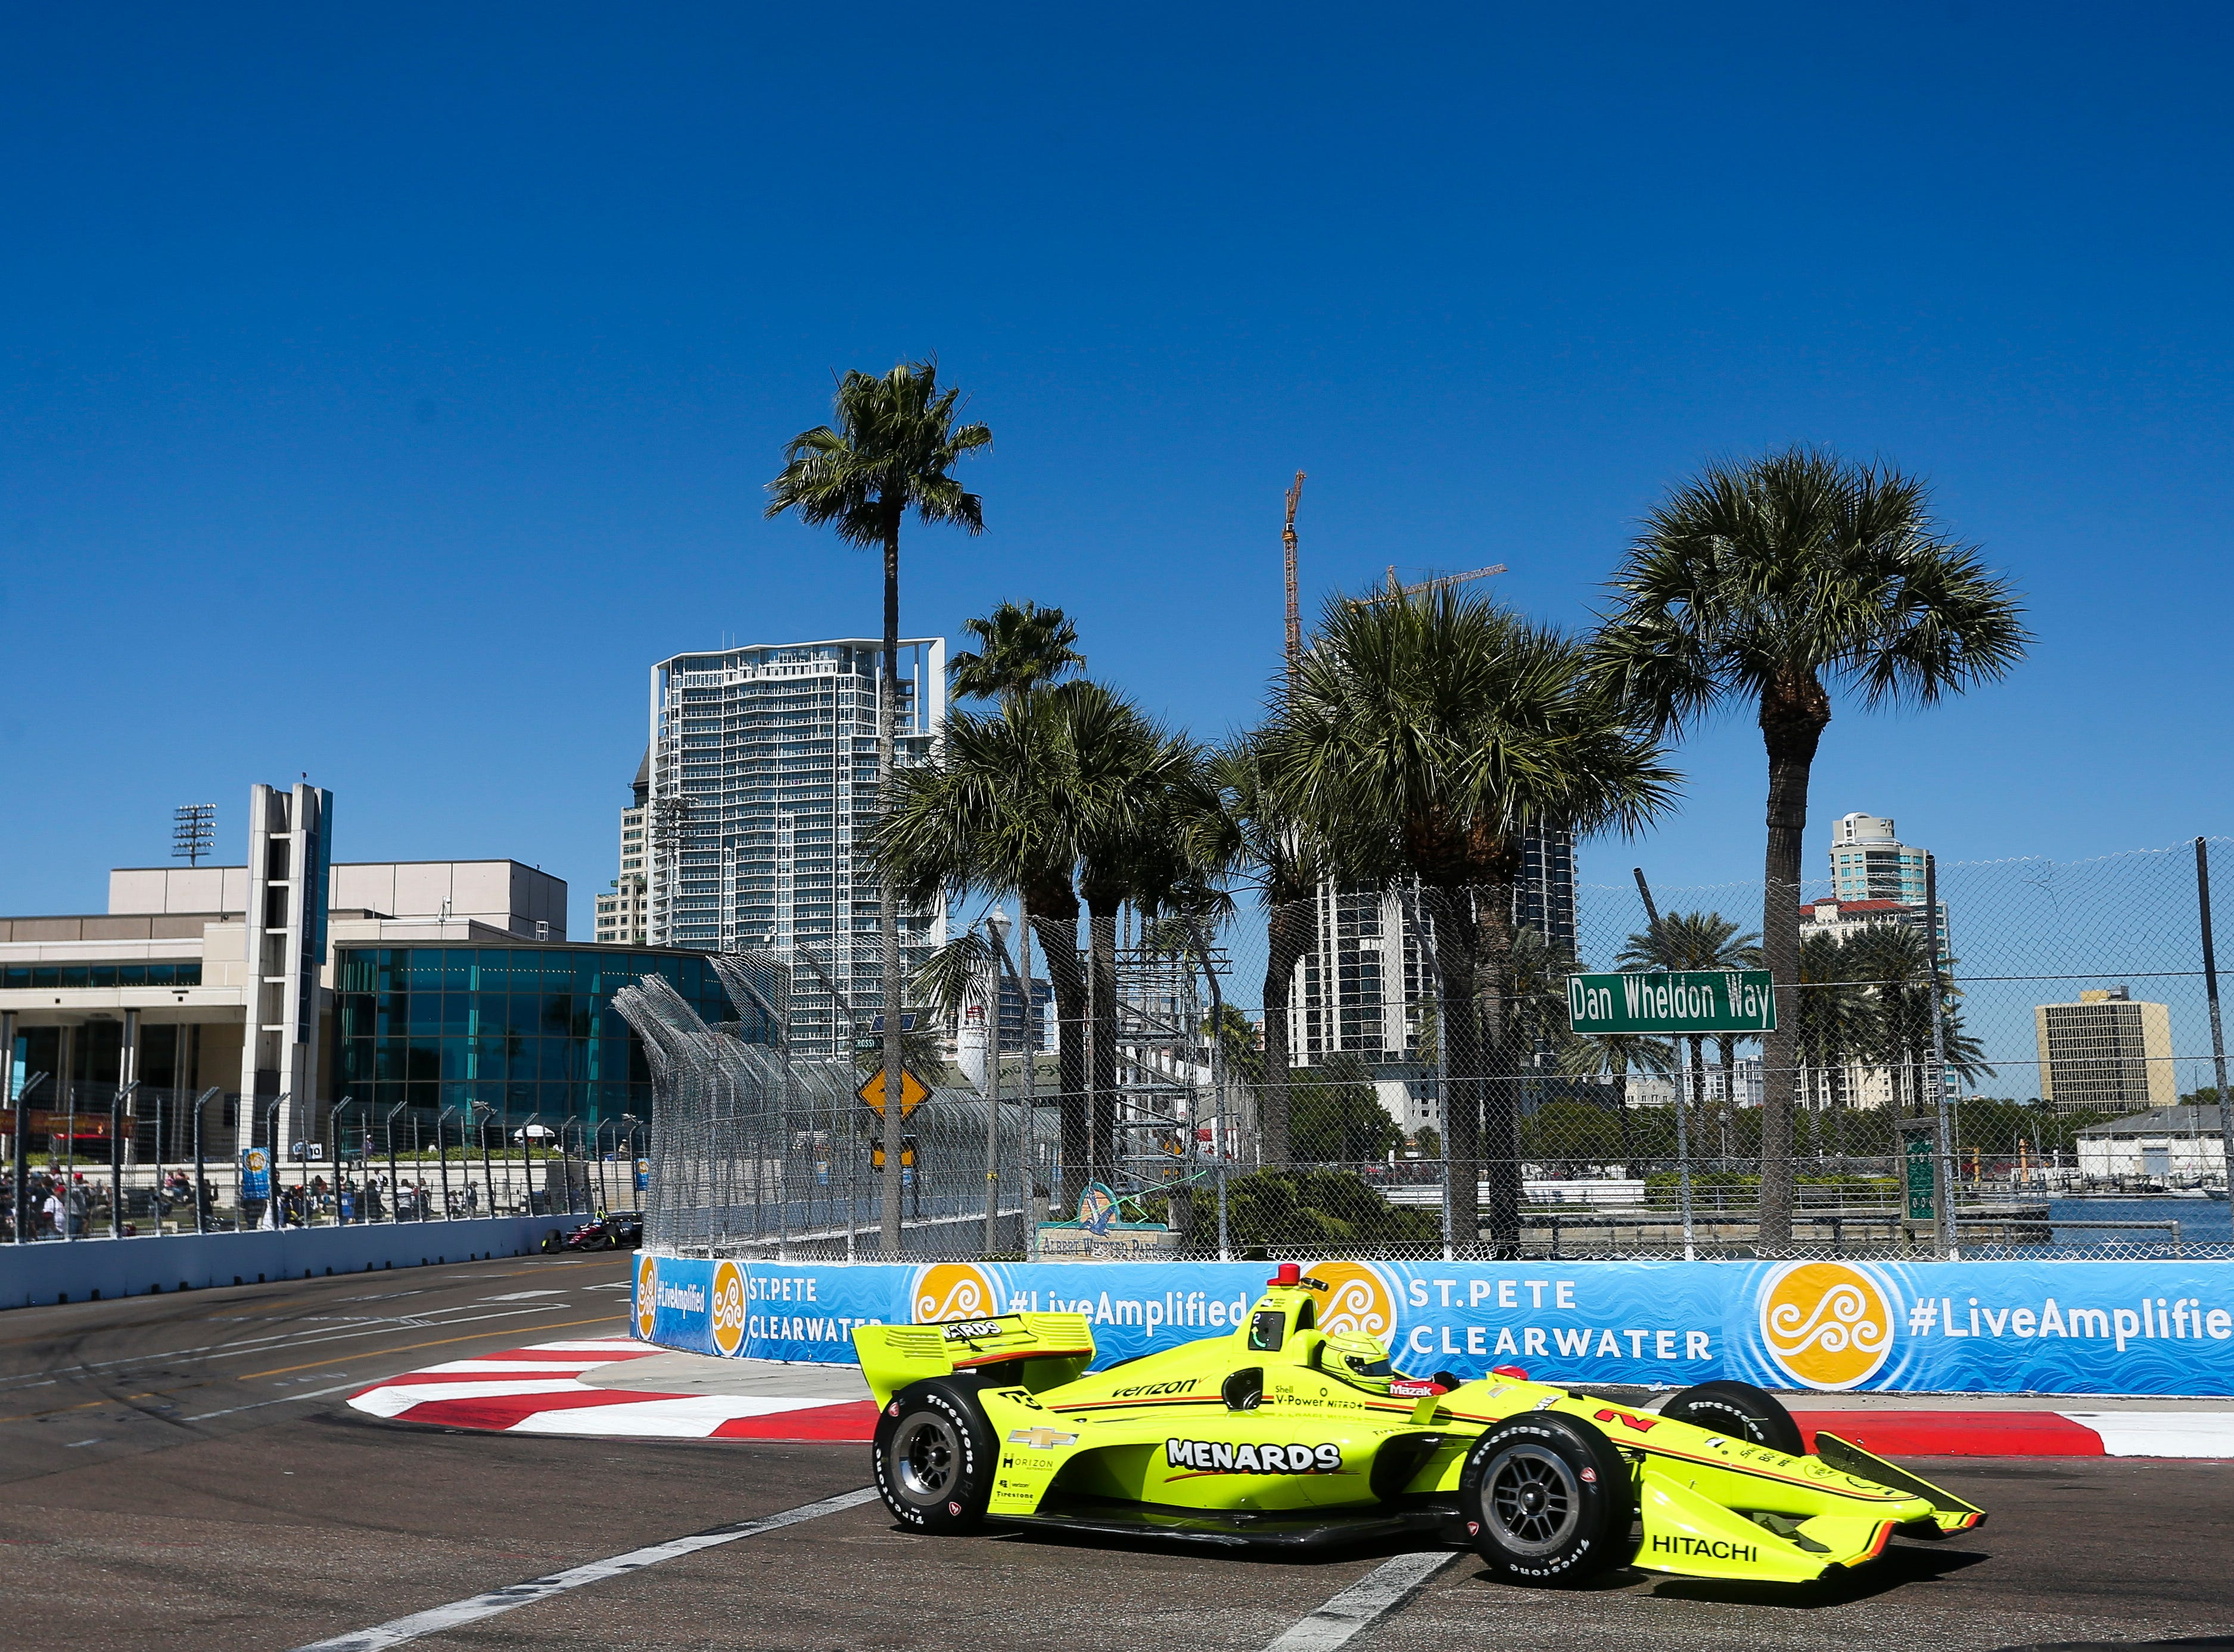 March 10: Firestone Grand Prix of St. Petersburg on the street course in St. Petersburg, Fla. (12:30 p.m. ET, NBCSN)